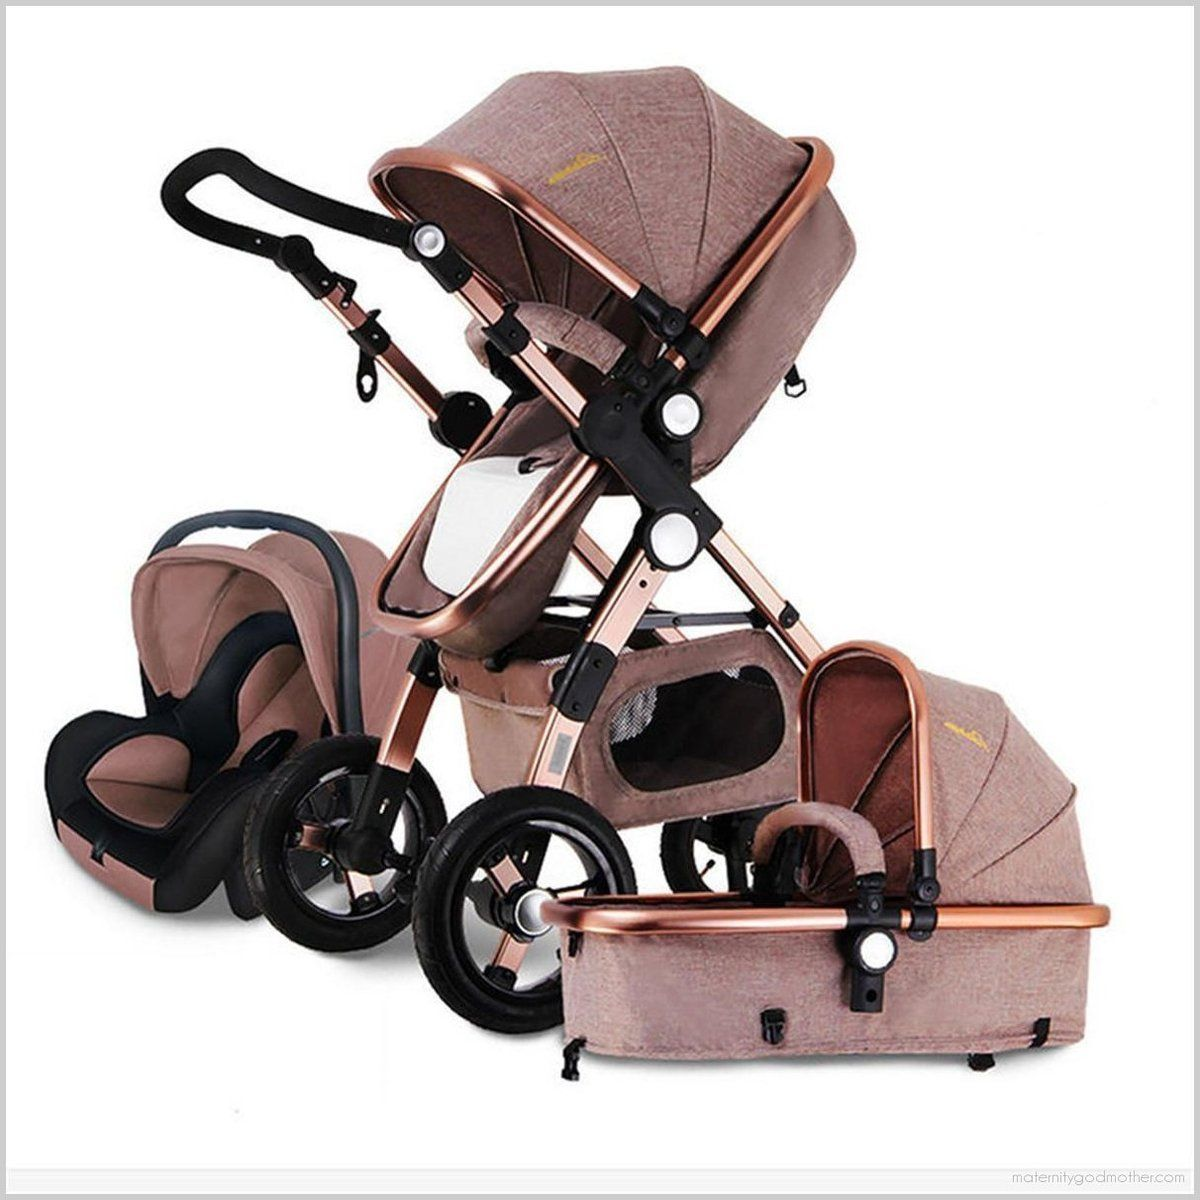 Shop the 3 in1 Multifunction Baby Stroller Car Seat at